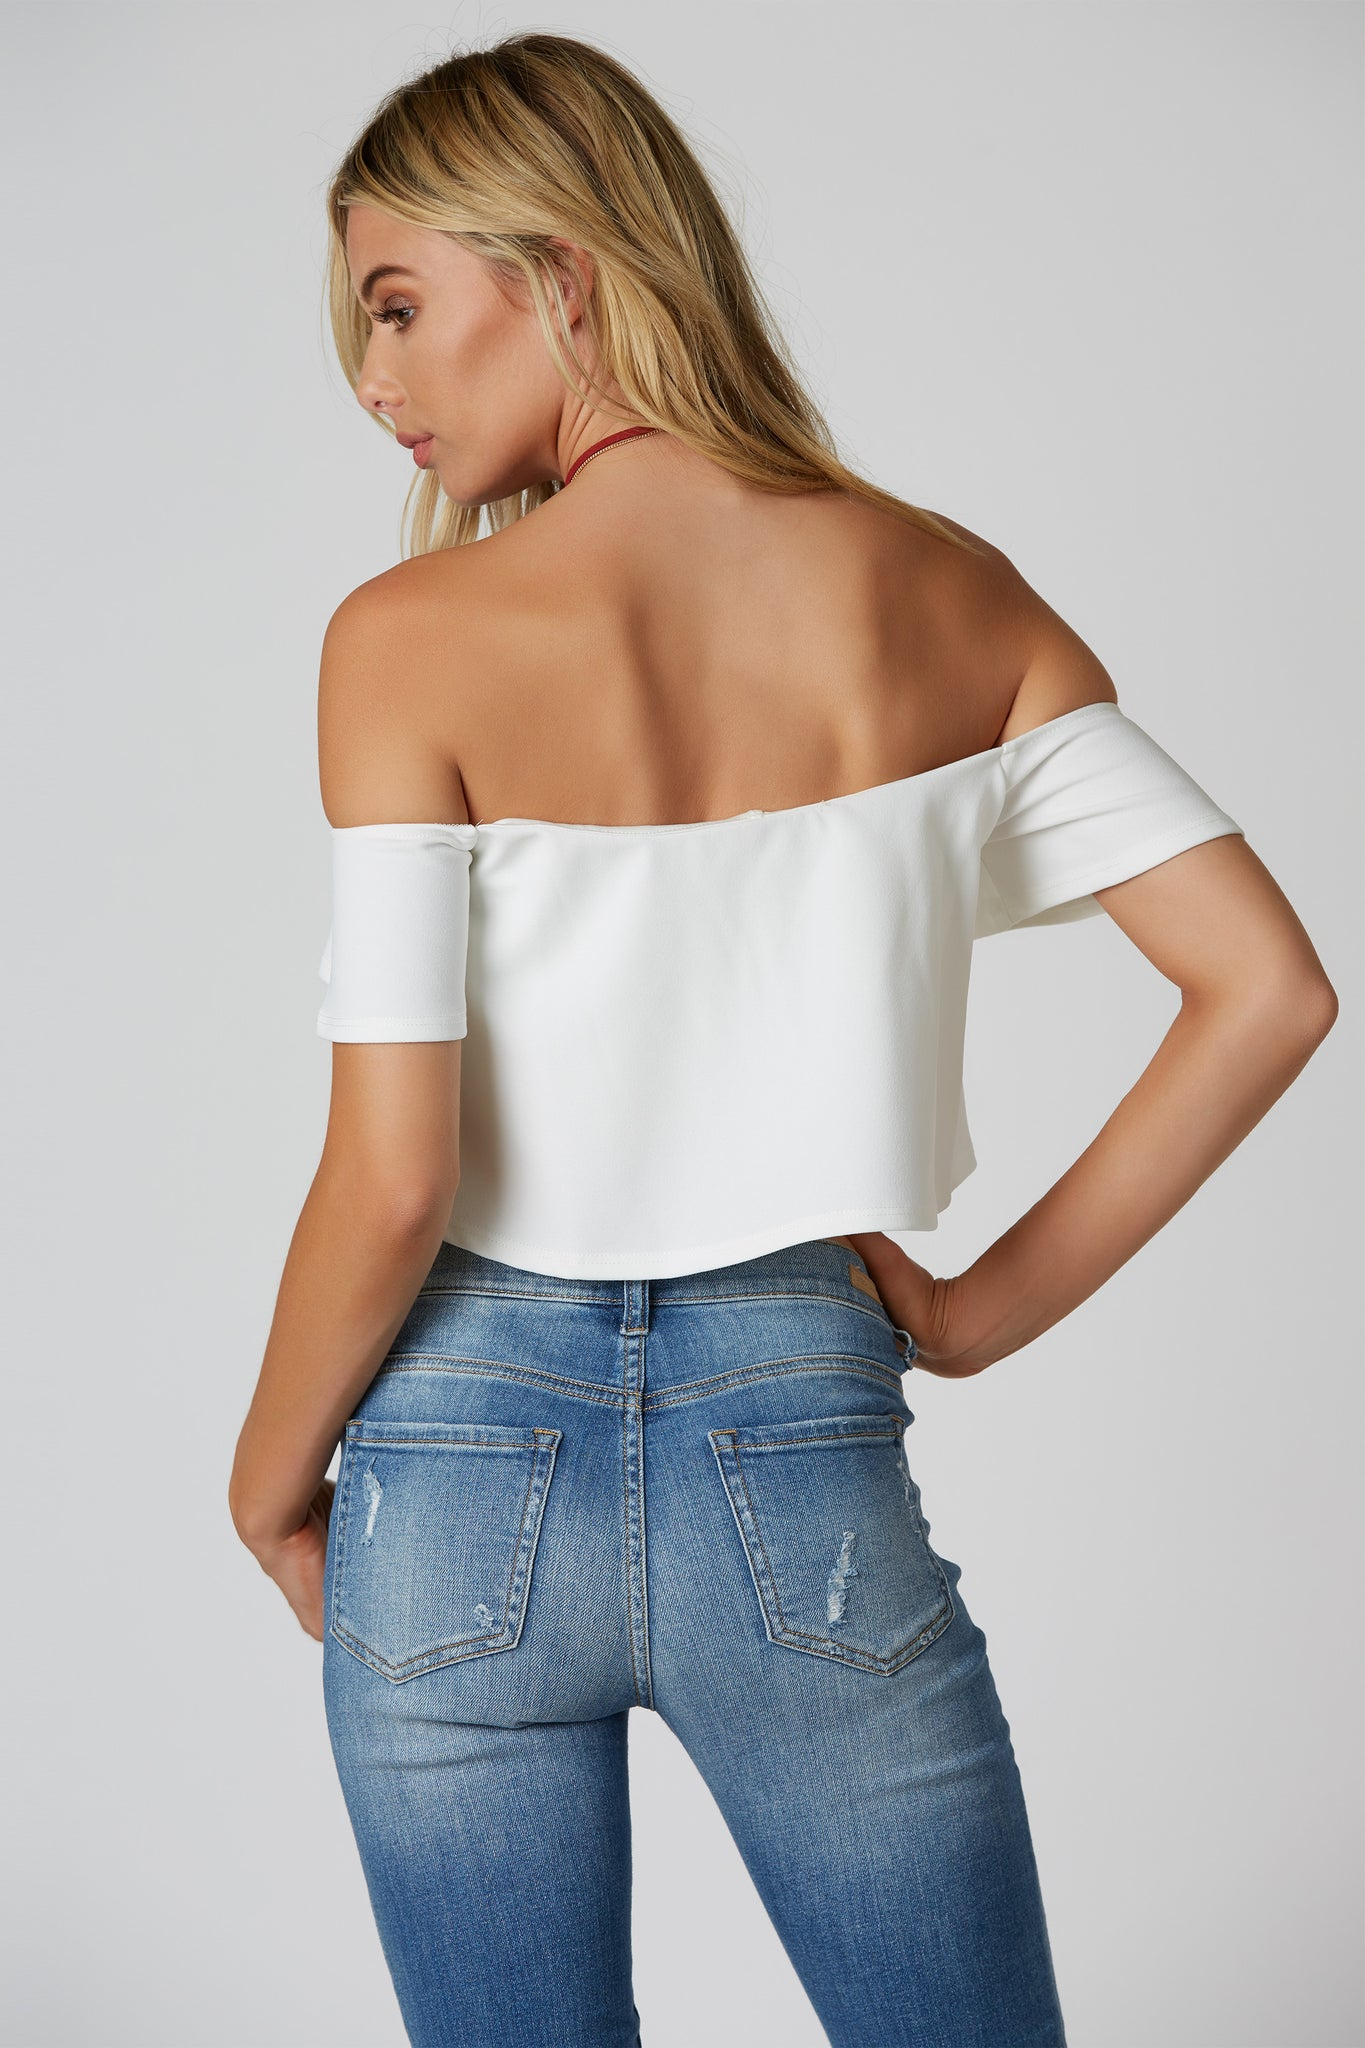 Flirty off shoulder crop top with A-line hem. Wired neckline, comfortable lining with stretchy fit.